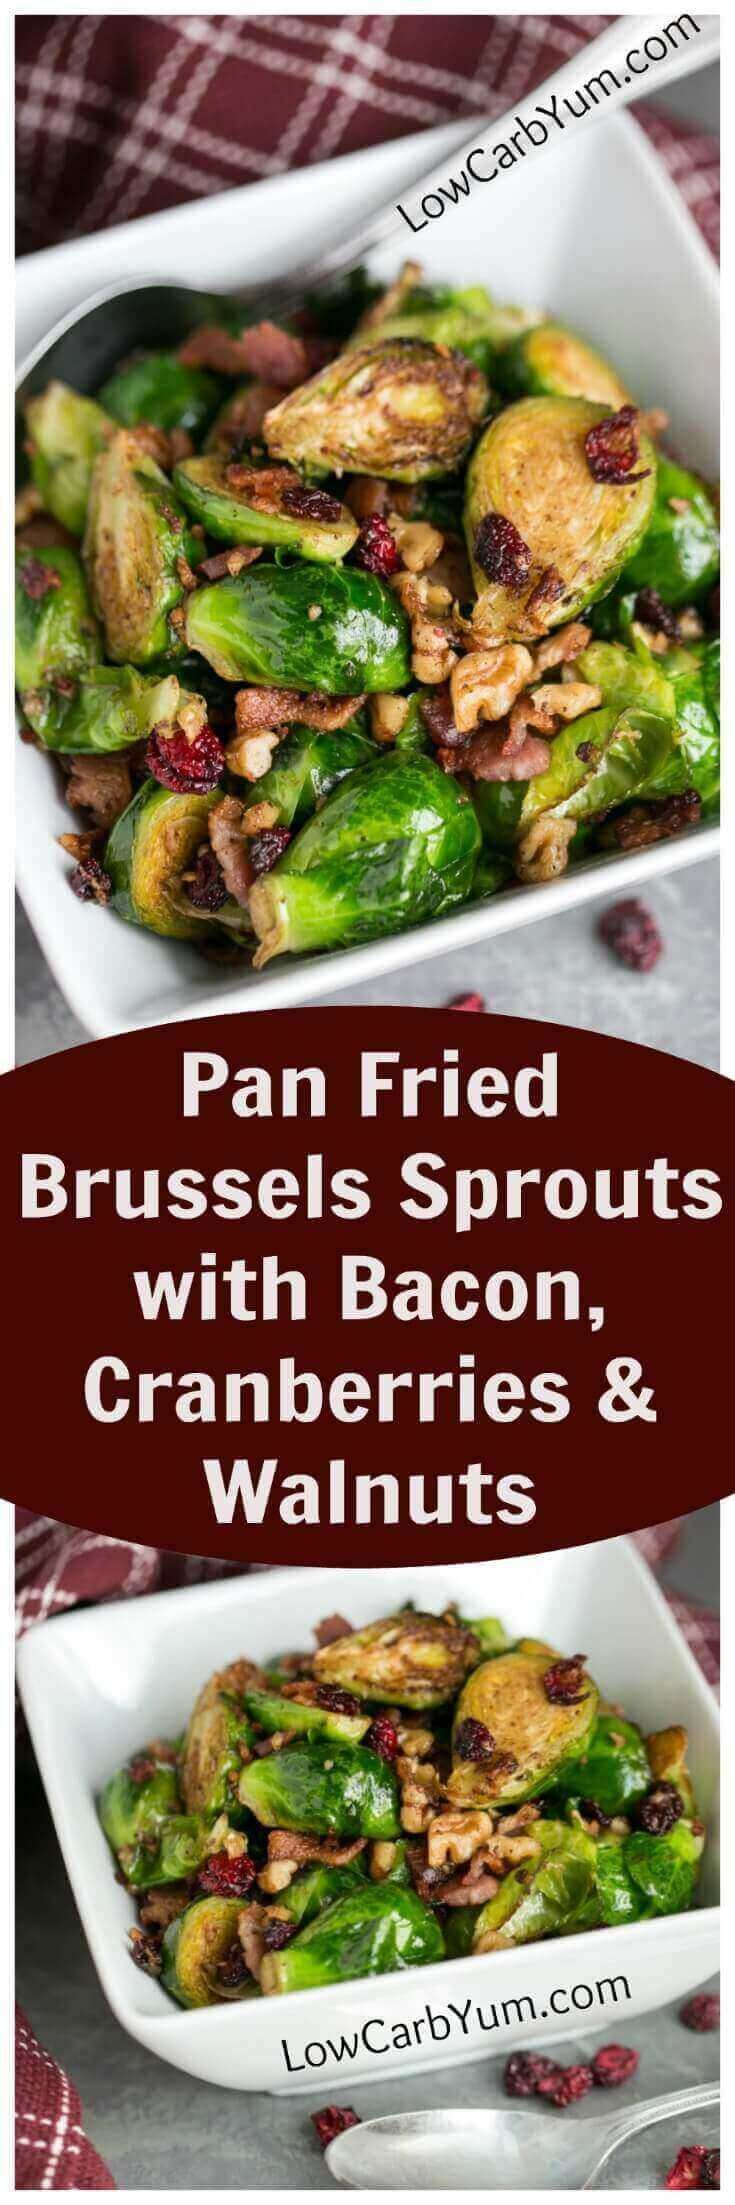 You'll win them over with these delicious pan fried Brussels sprouts with bacon and cranberries. Adding chopped walnuts makes it even better!   http://LowCarbYum.com #lowcarbsidedishes #lowcarbrecipe #holidaysidedishes #holidayrecipe